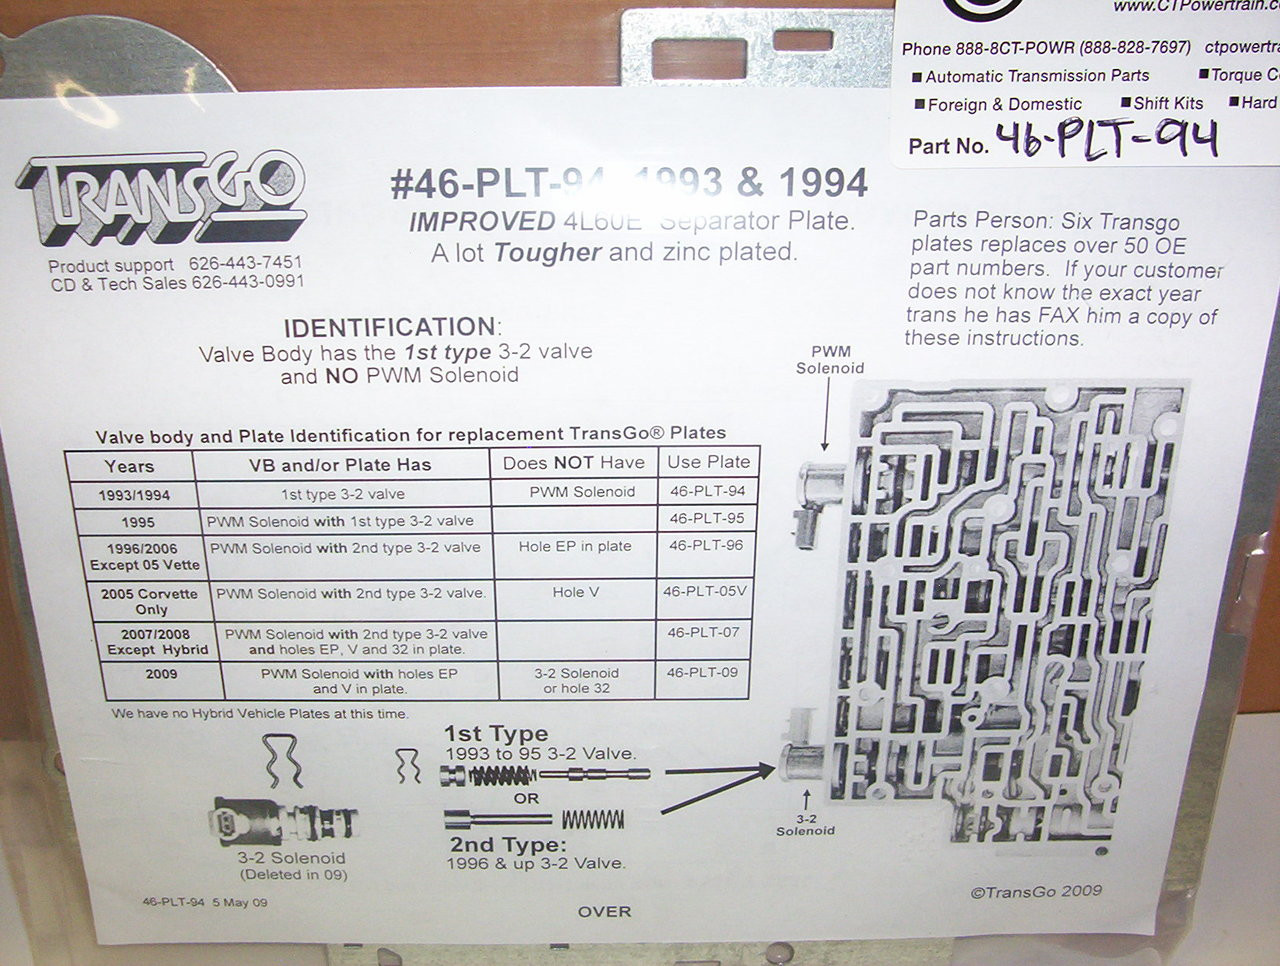 New TransGo 46-PLT-94 4L60E Valve Body Plate 1993-1994 Heavy Duty